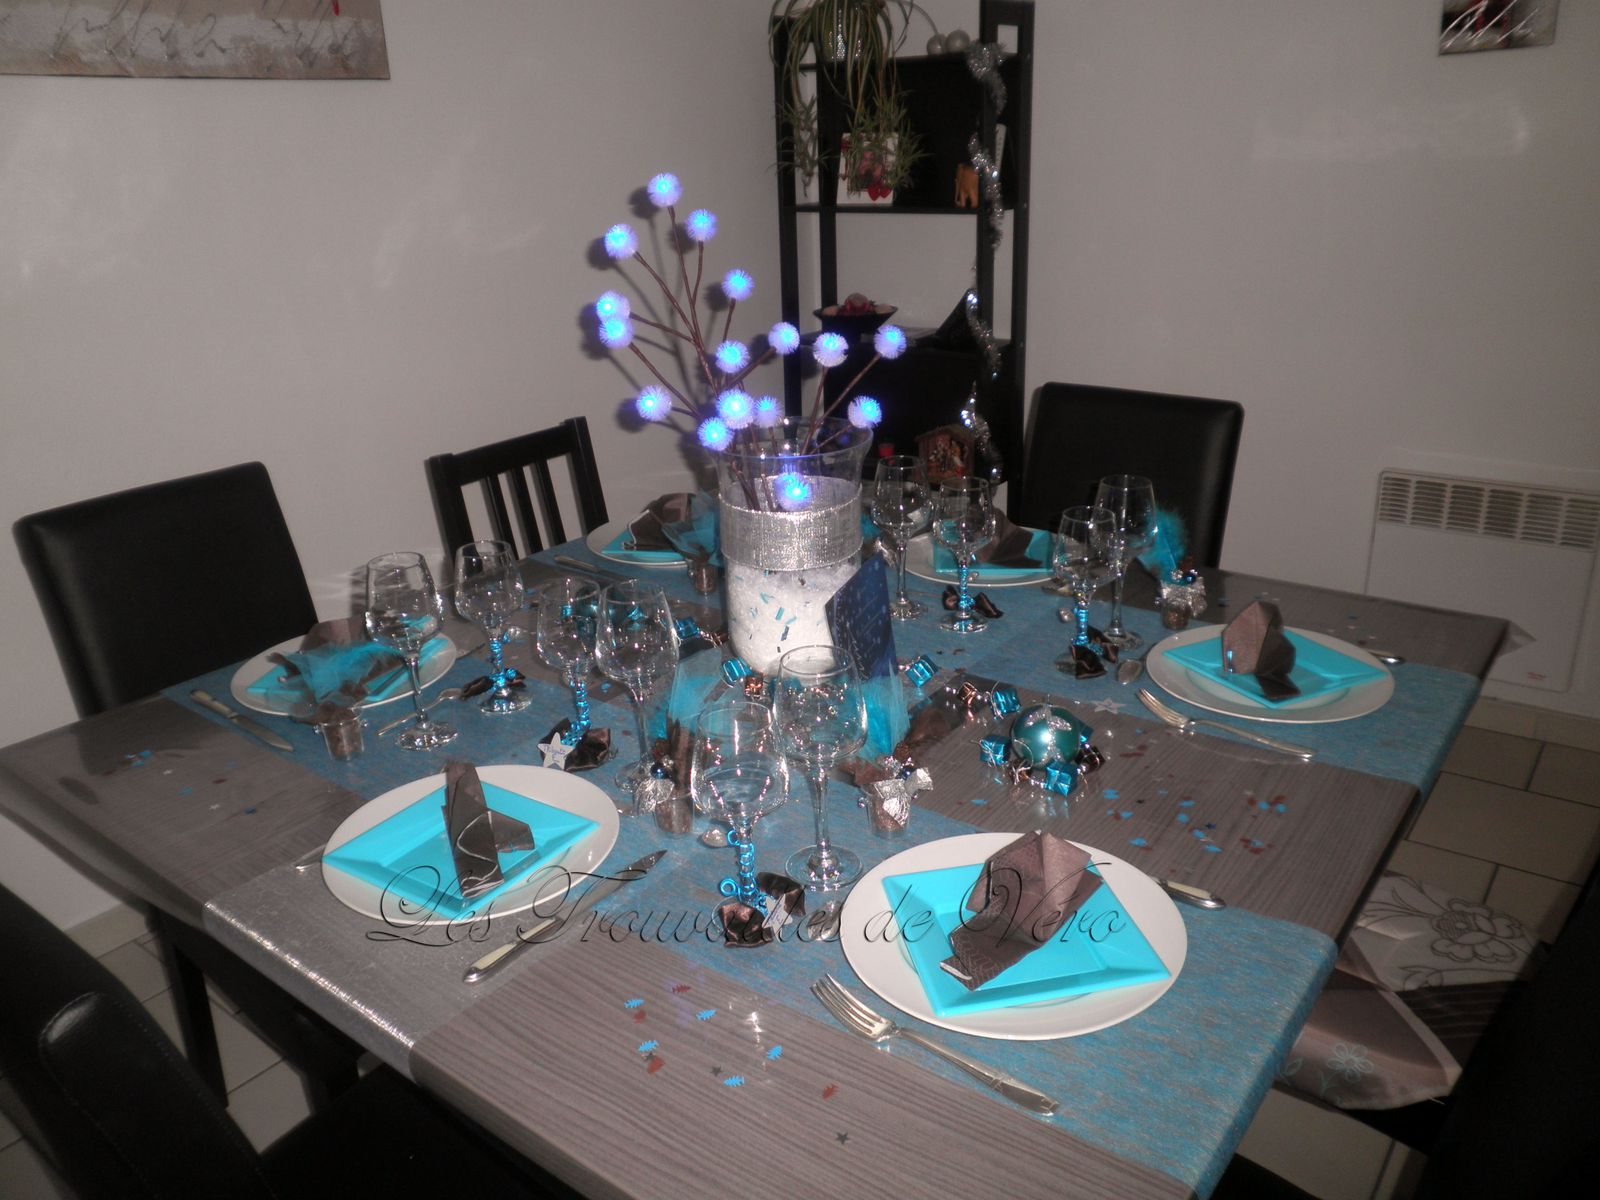 Decoration de table noel turquoise 28 images d 233 for Decoration de table bleu turquoise